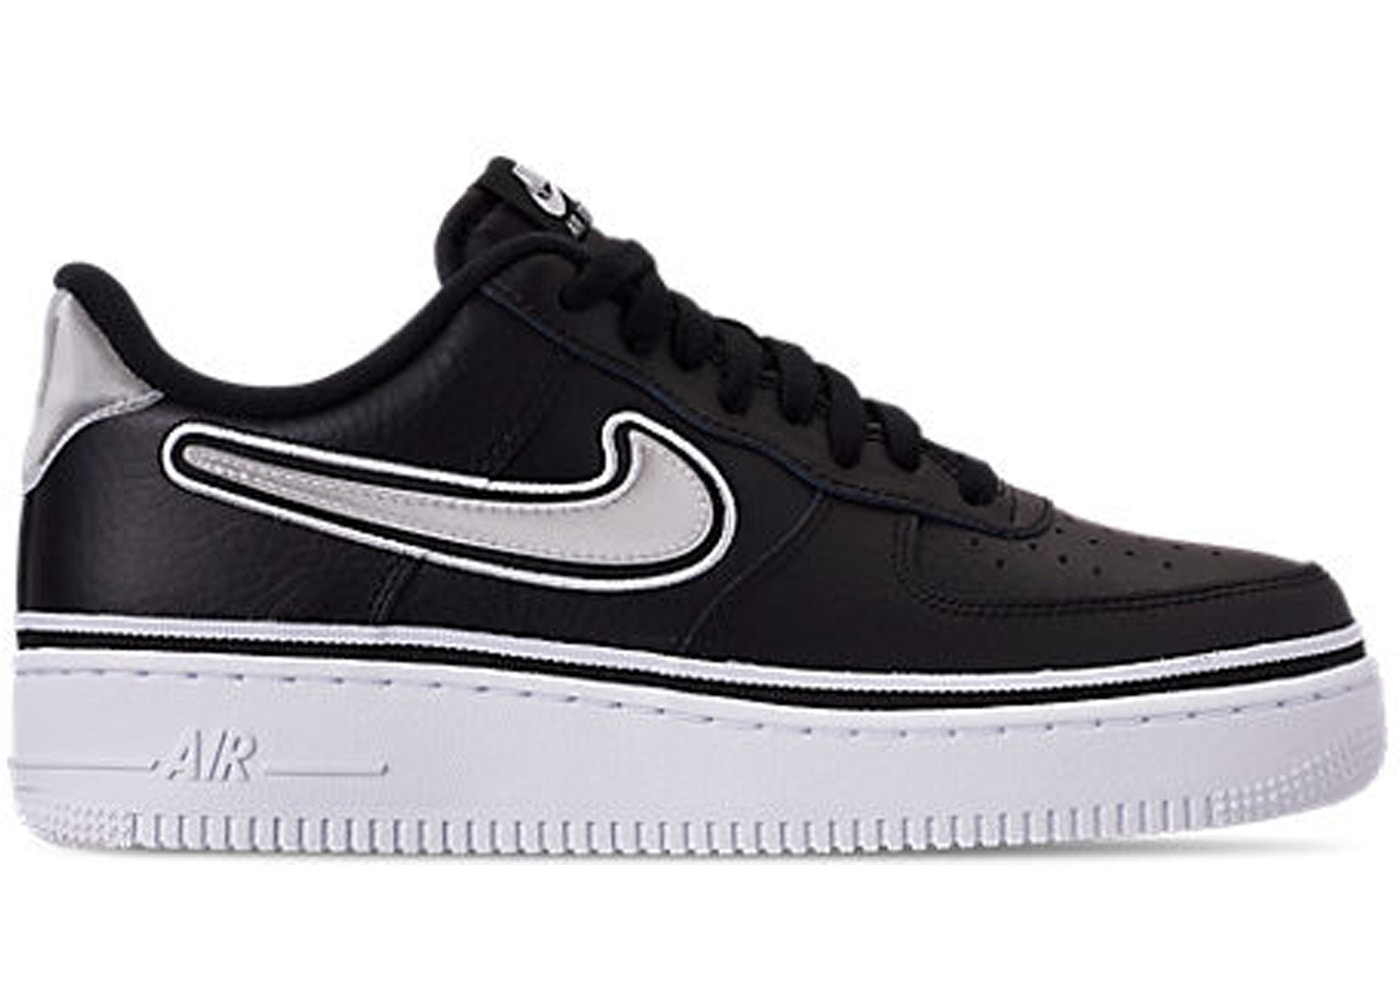 new style 59441 e74b6 Air Force 1 Low Sport NBA Black White